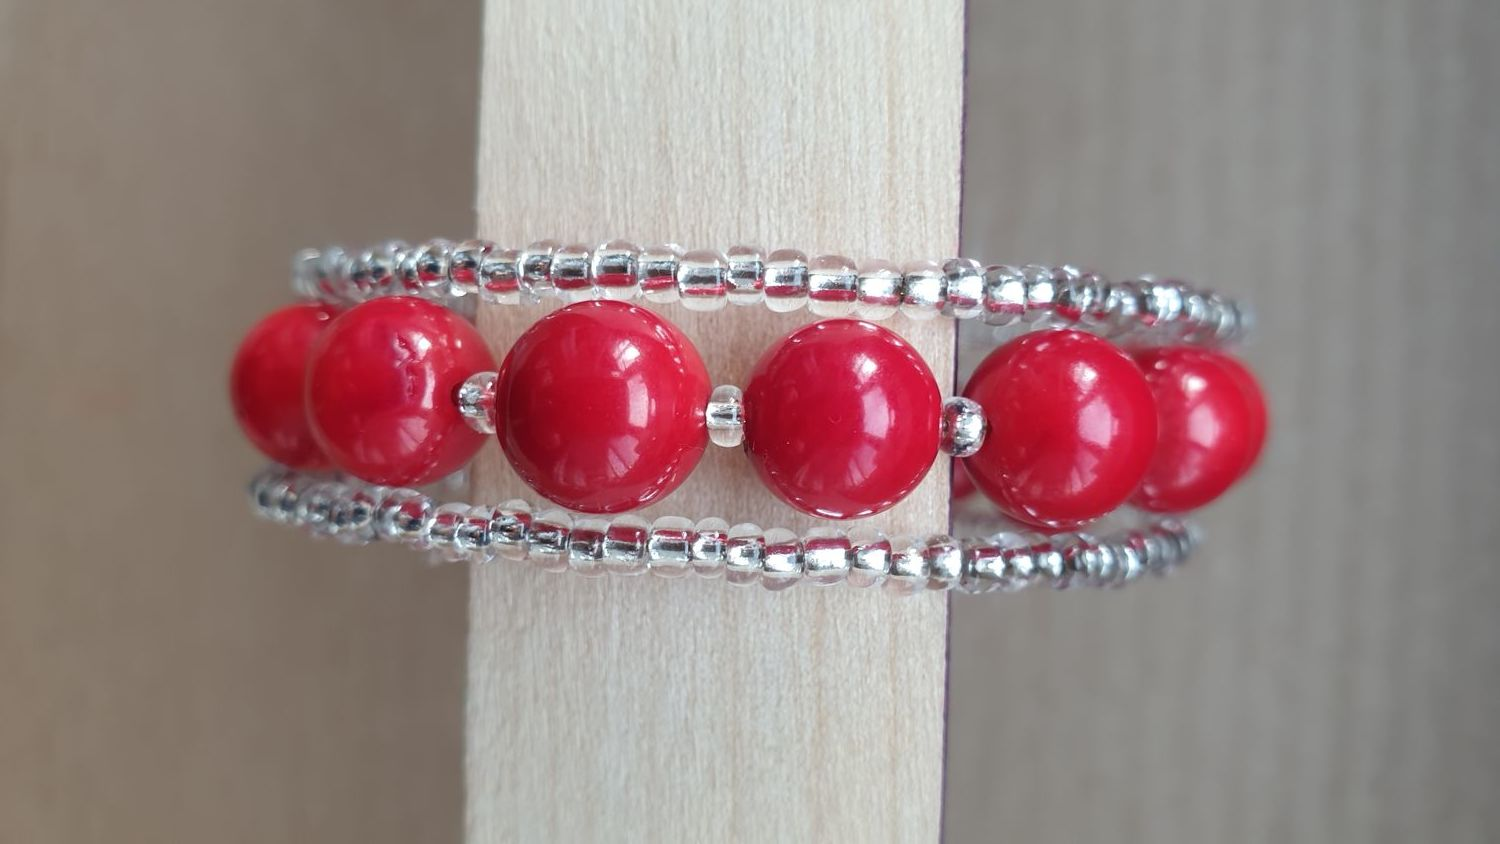 Coral bracelet on memory, Gifts for March 8, Moscow,  Фото №1